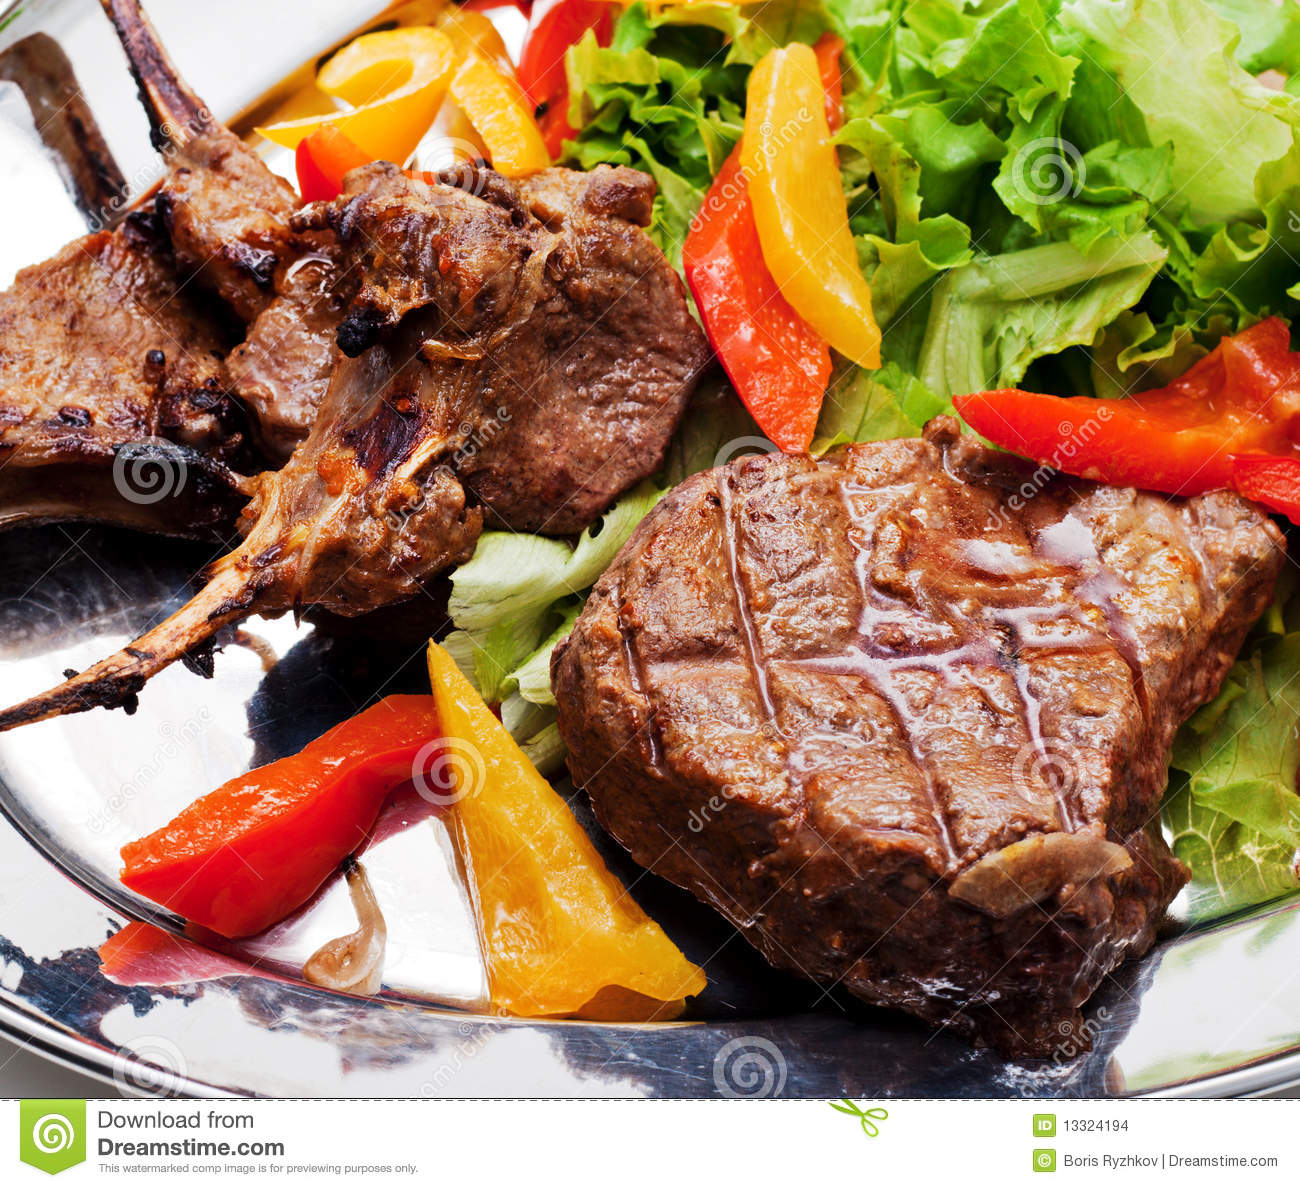 BBQ Meat Plate Stock Images - Image: 13324194